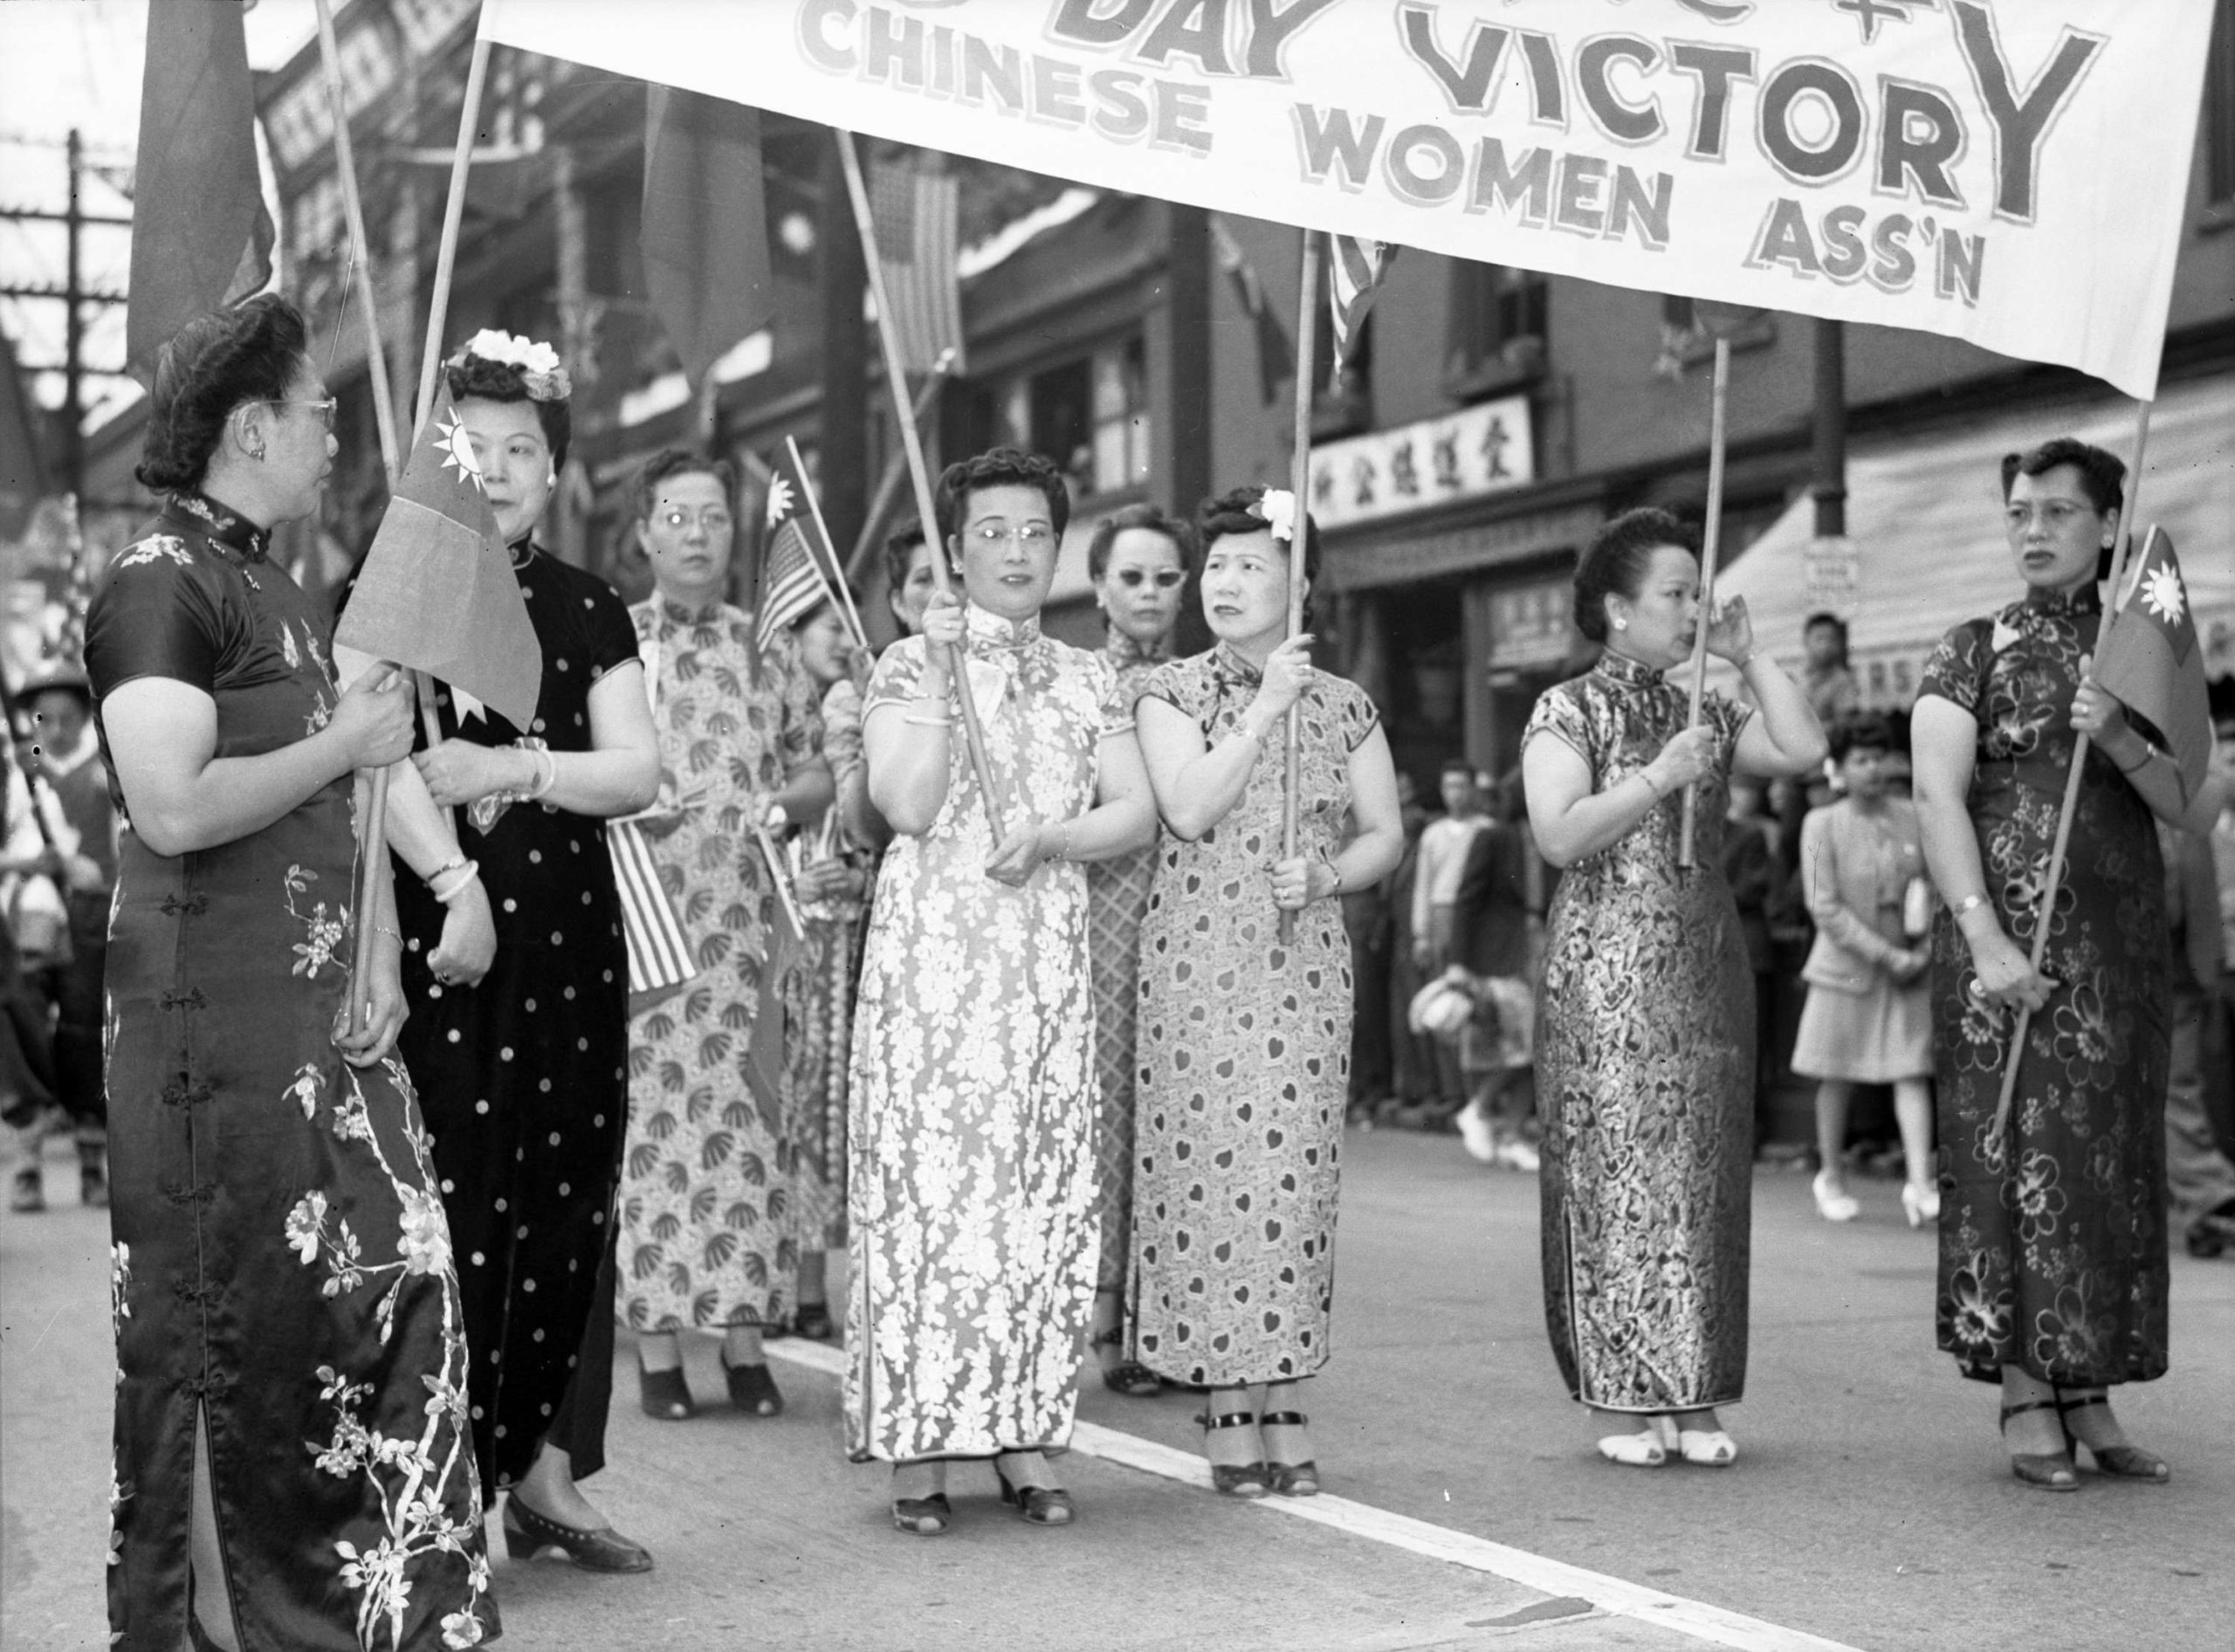 Several middle-aged women wearing qipaos walk down the street hoisting a victory banner.